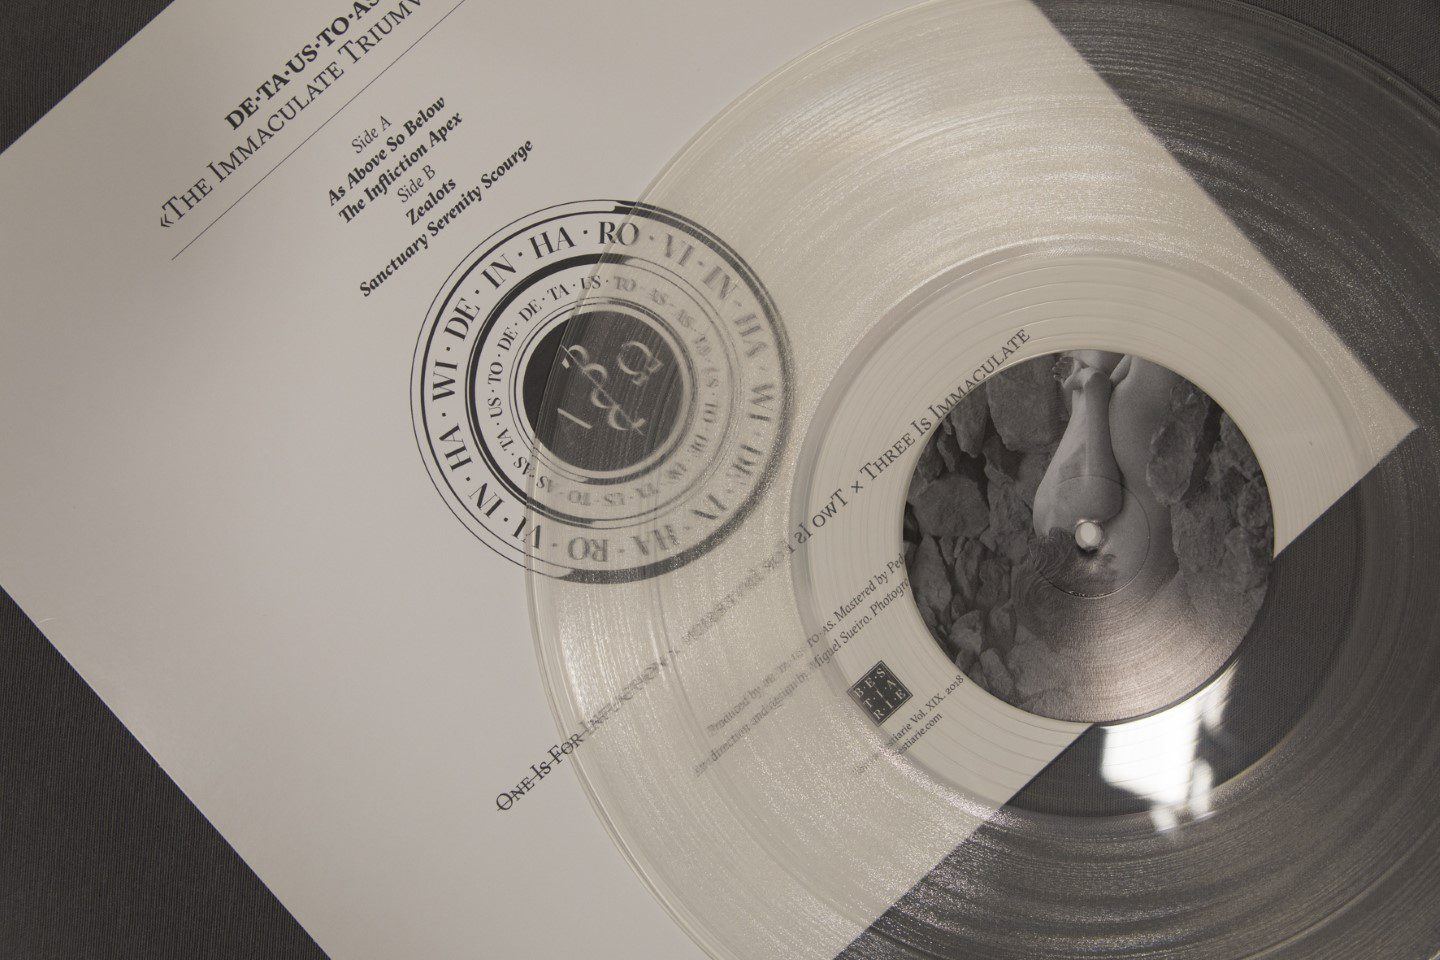 DE·TA·US·TO·AS – The Immaculate Triumvirate - Vinilo 12""